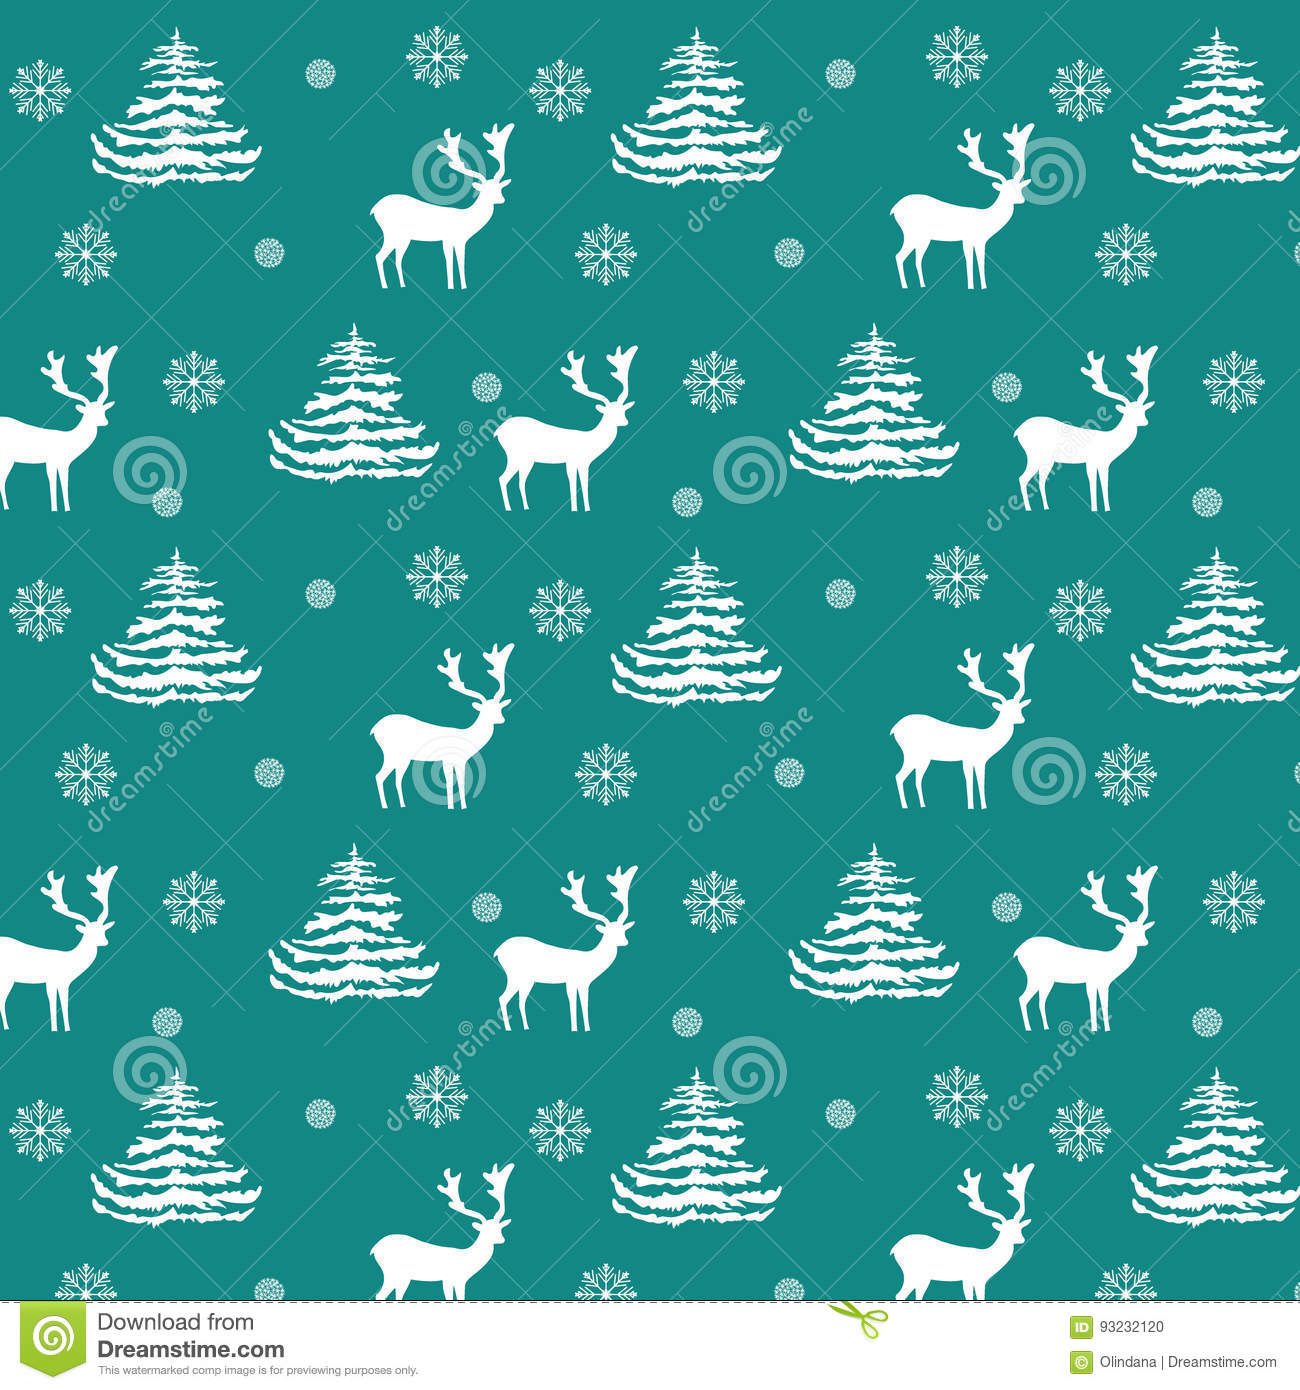 Seamless Christmas pattern hand drawn realistic reindeers, fir trees, snowflakes, white silhouette on turquoise background